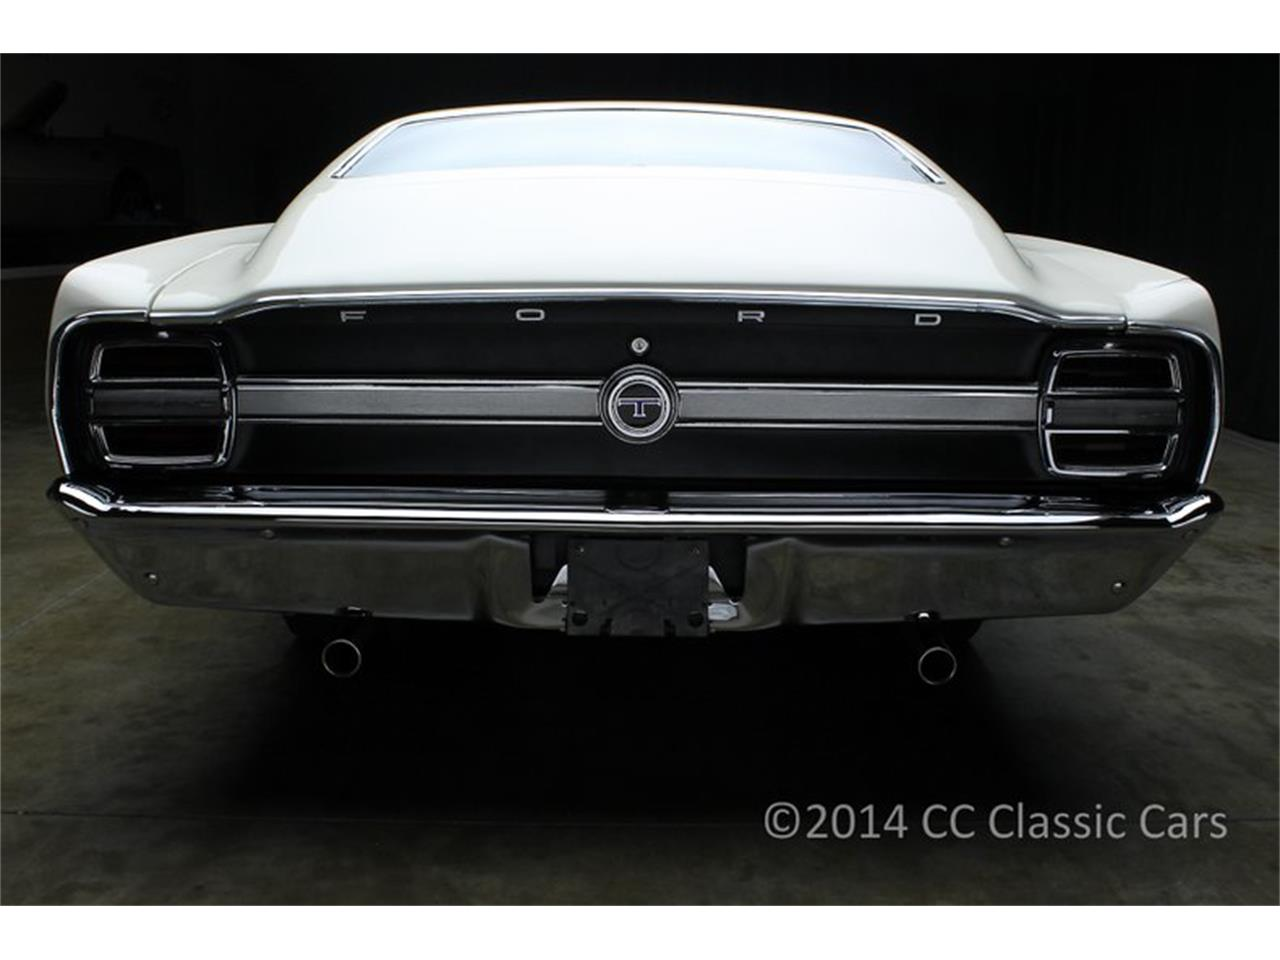 Large Picture of '69 Torino located in West Chester Pennsylvania - $69,900.00 - HZ0H